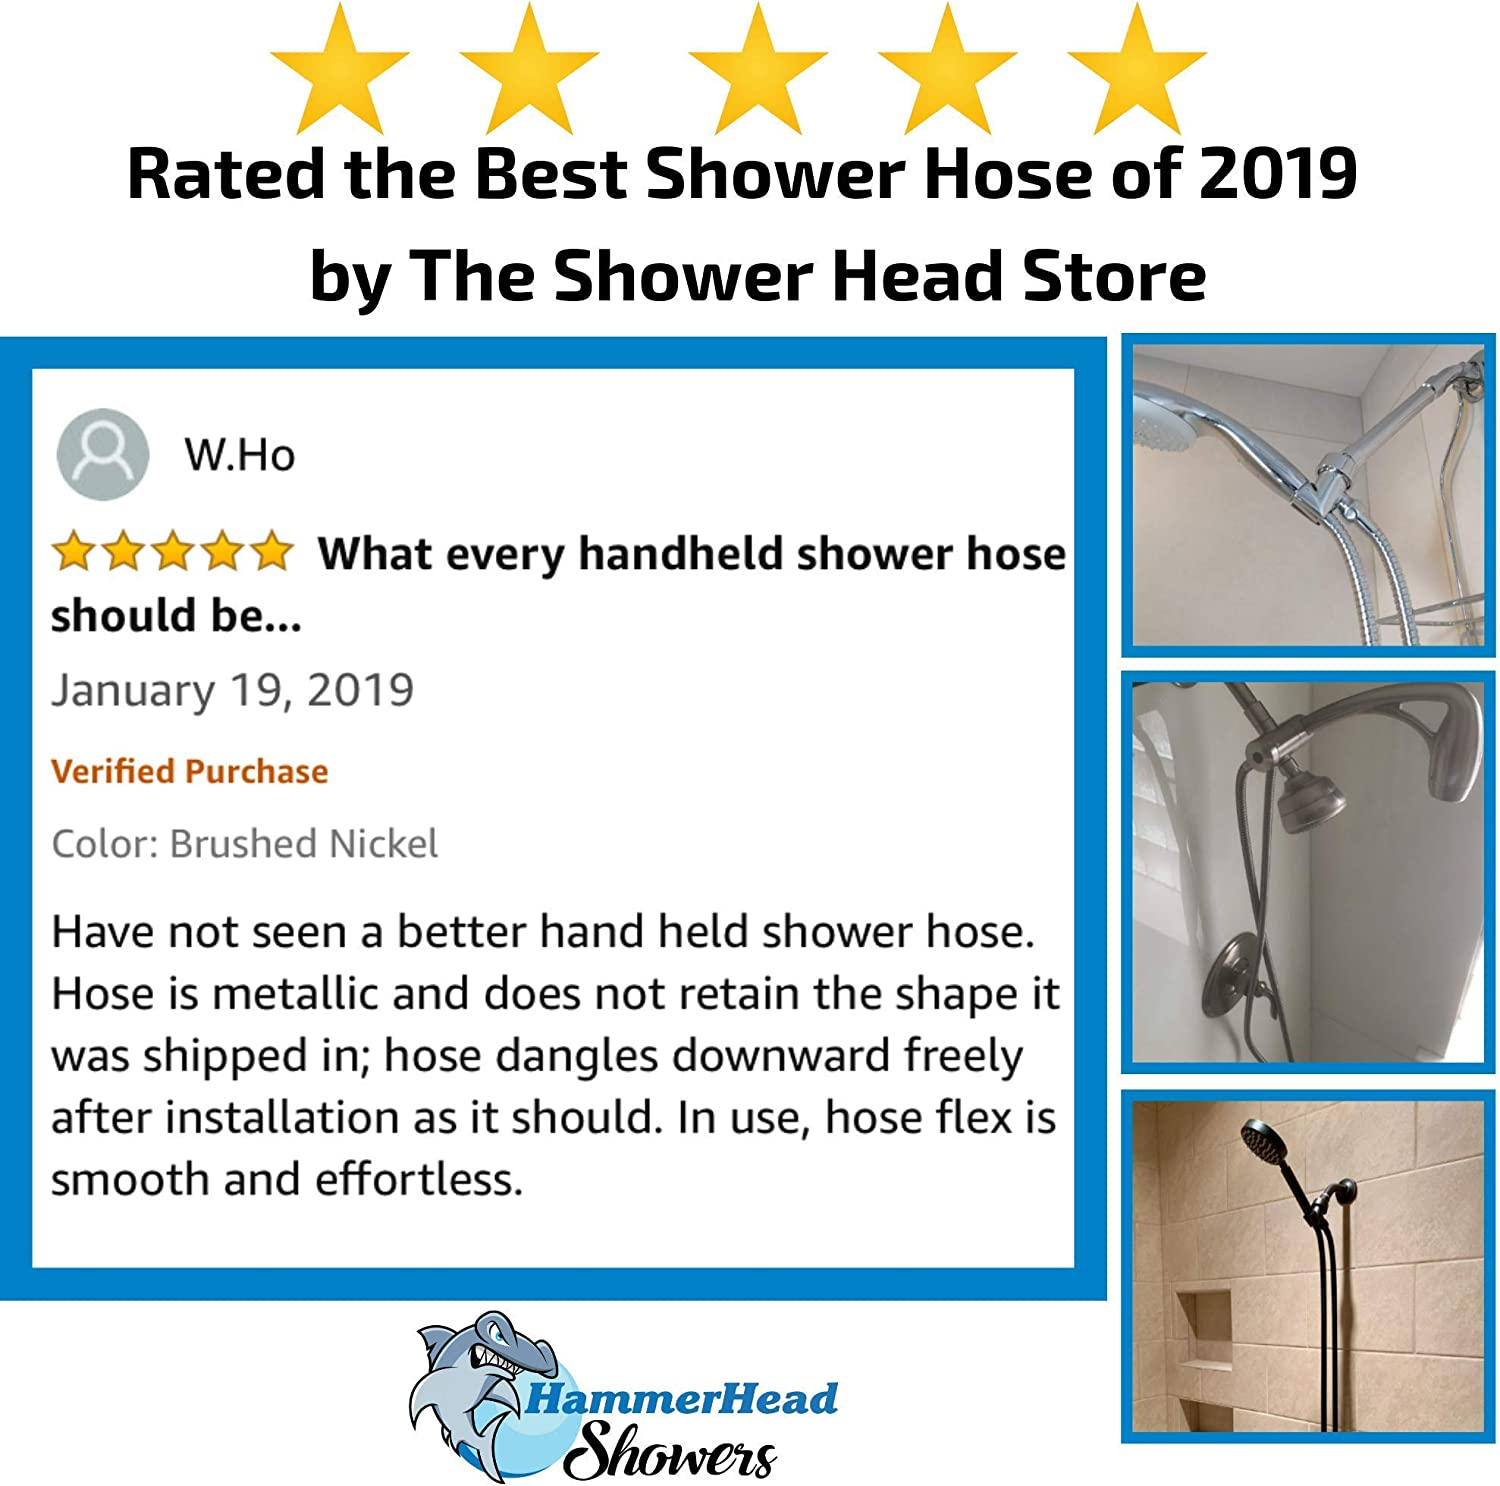 Universal Replacement Part For Handheld Showerhead Hoses Extra Long 72 Inch Cord Made With Commercial Grade 304 Stainless Steel 100/% Metal Shower Hose For Hand Held Shower Heads Oil Rubbed Bronze